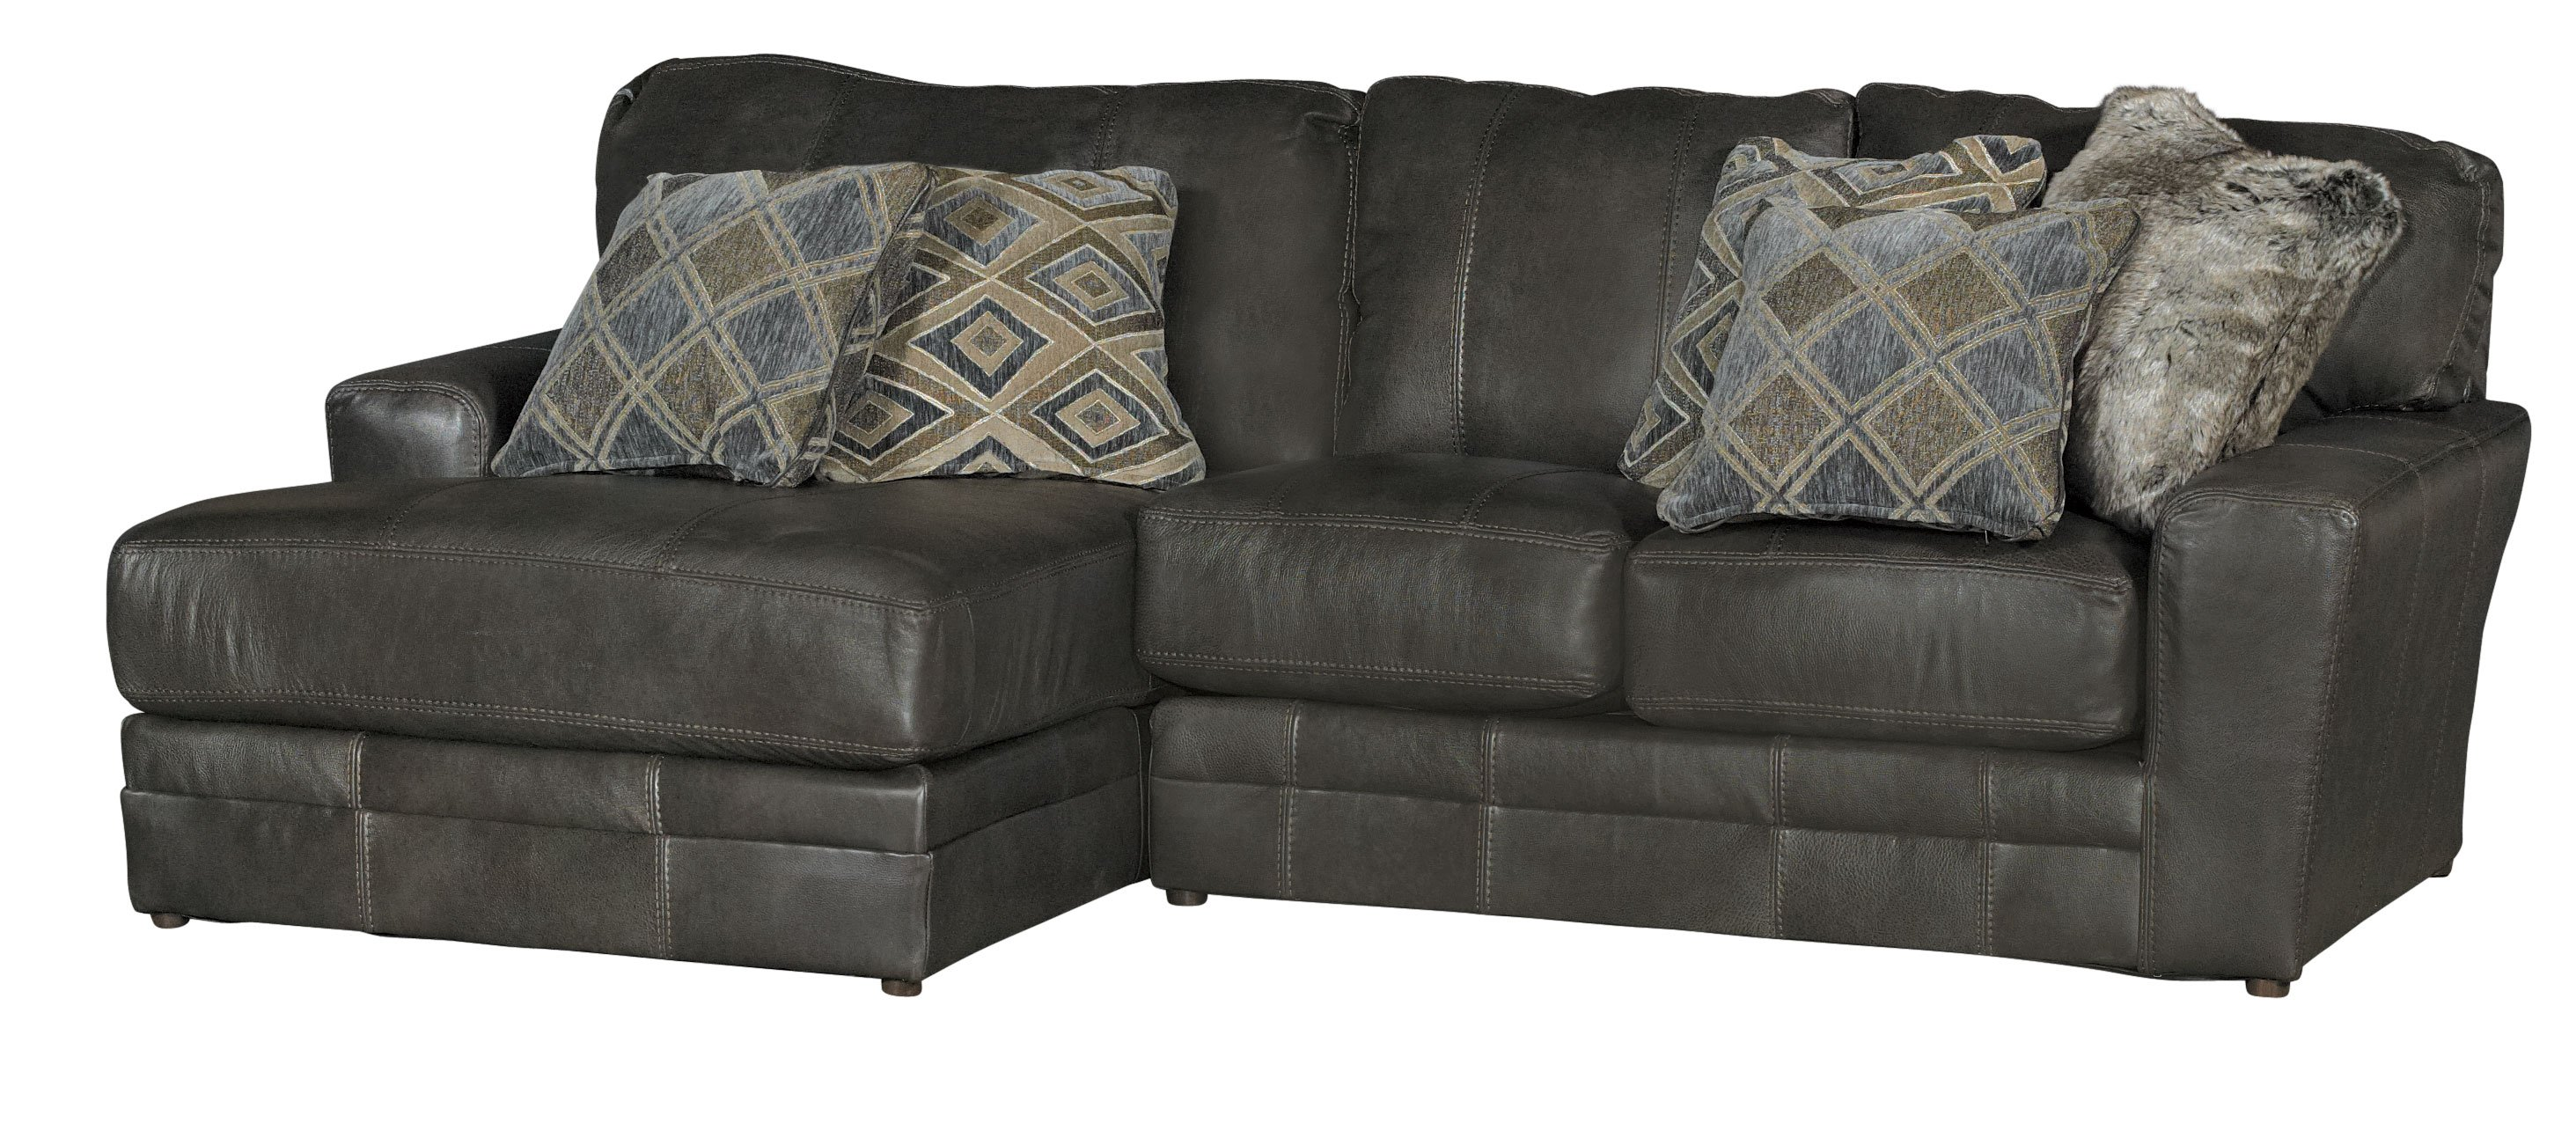 Casual Classic 4 Piece Steel Gray Leather Match Sectional